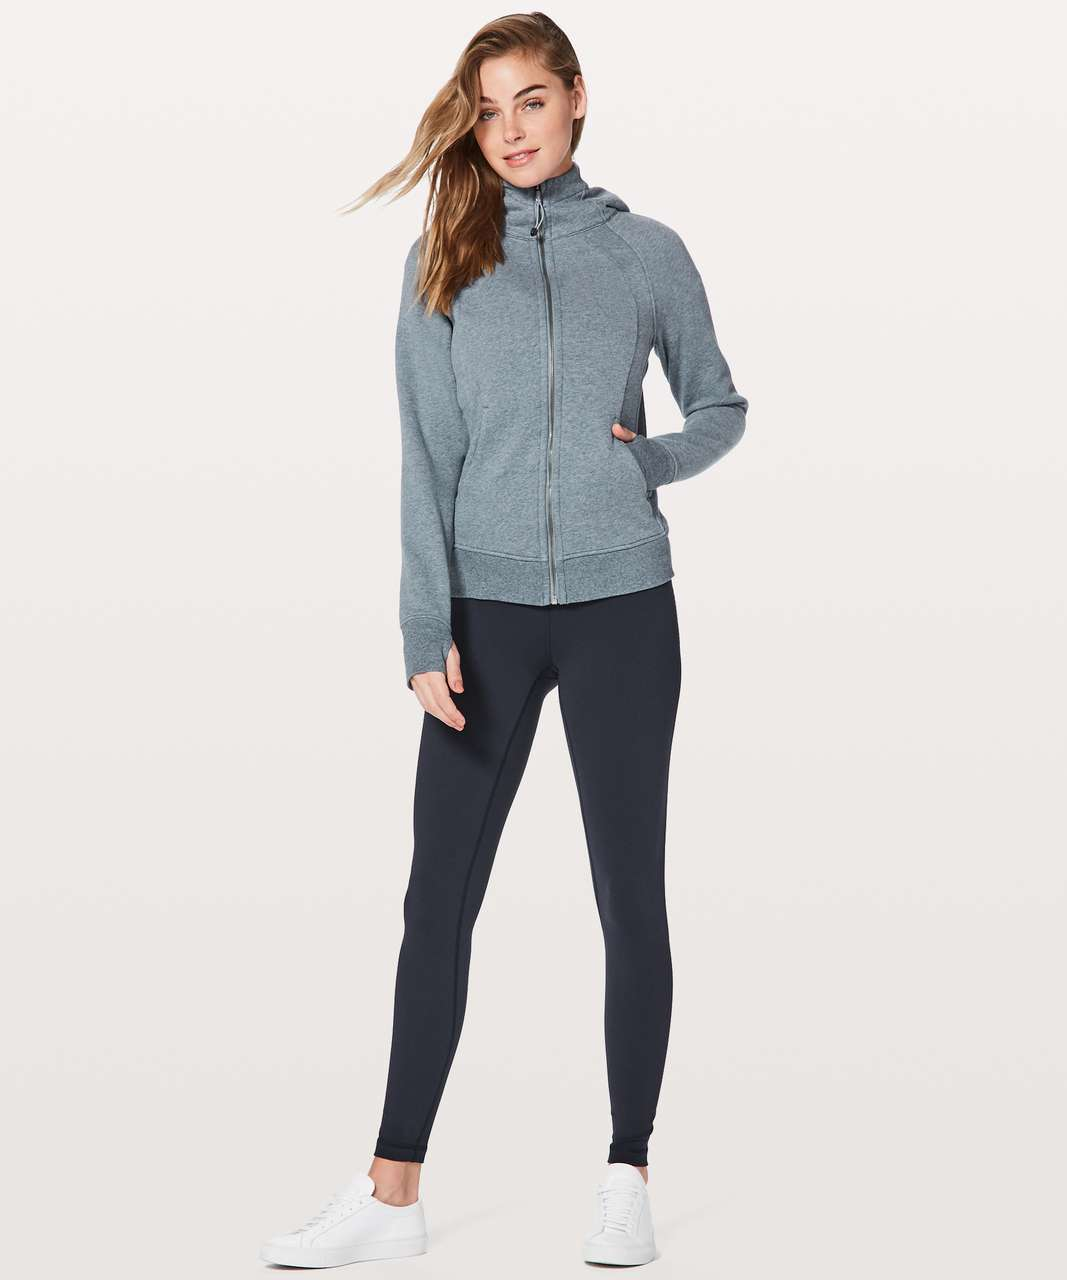 Lululemon Scuba Hoodie *Light Cotton Fleece - Heathered Sterling